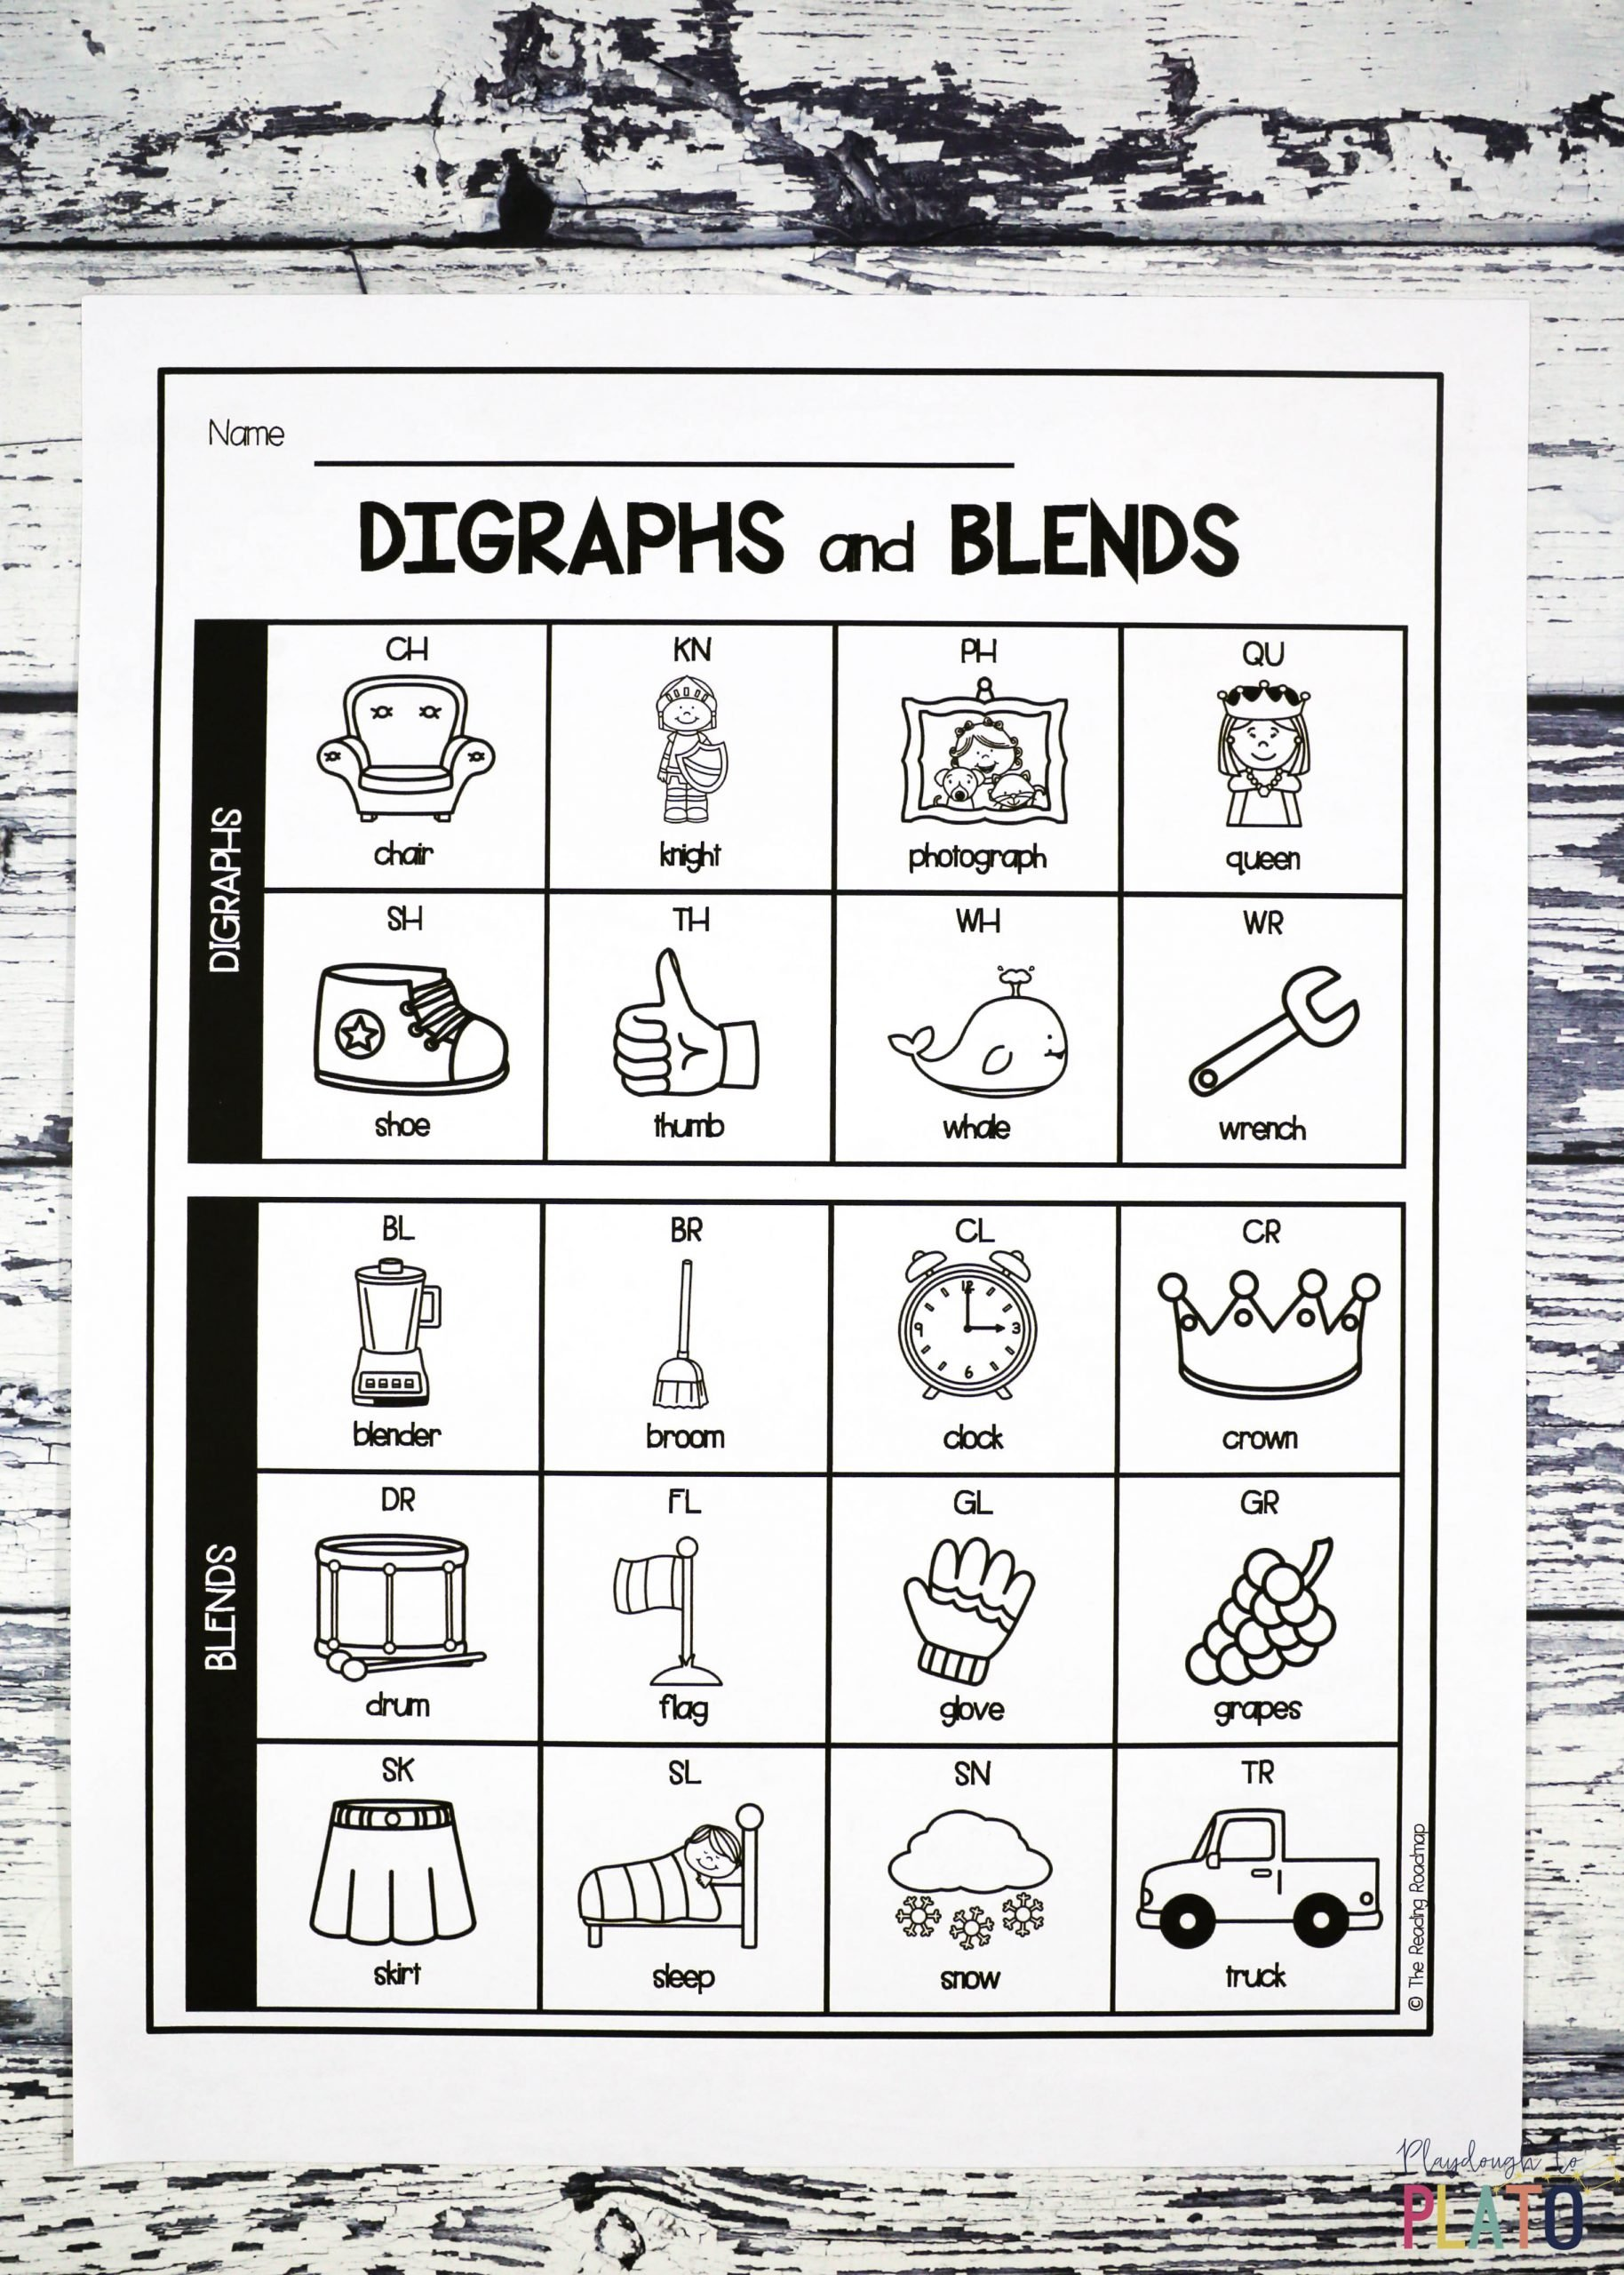 L Blends Worksheets for Kindergarten Digraph and Blend Chart Playdough to Plato